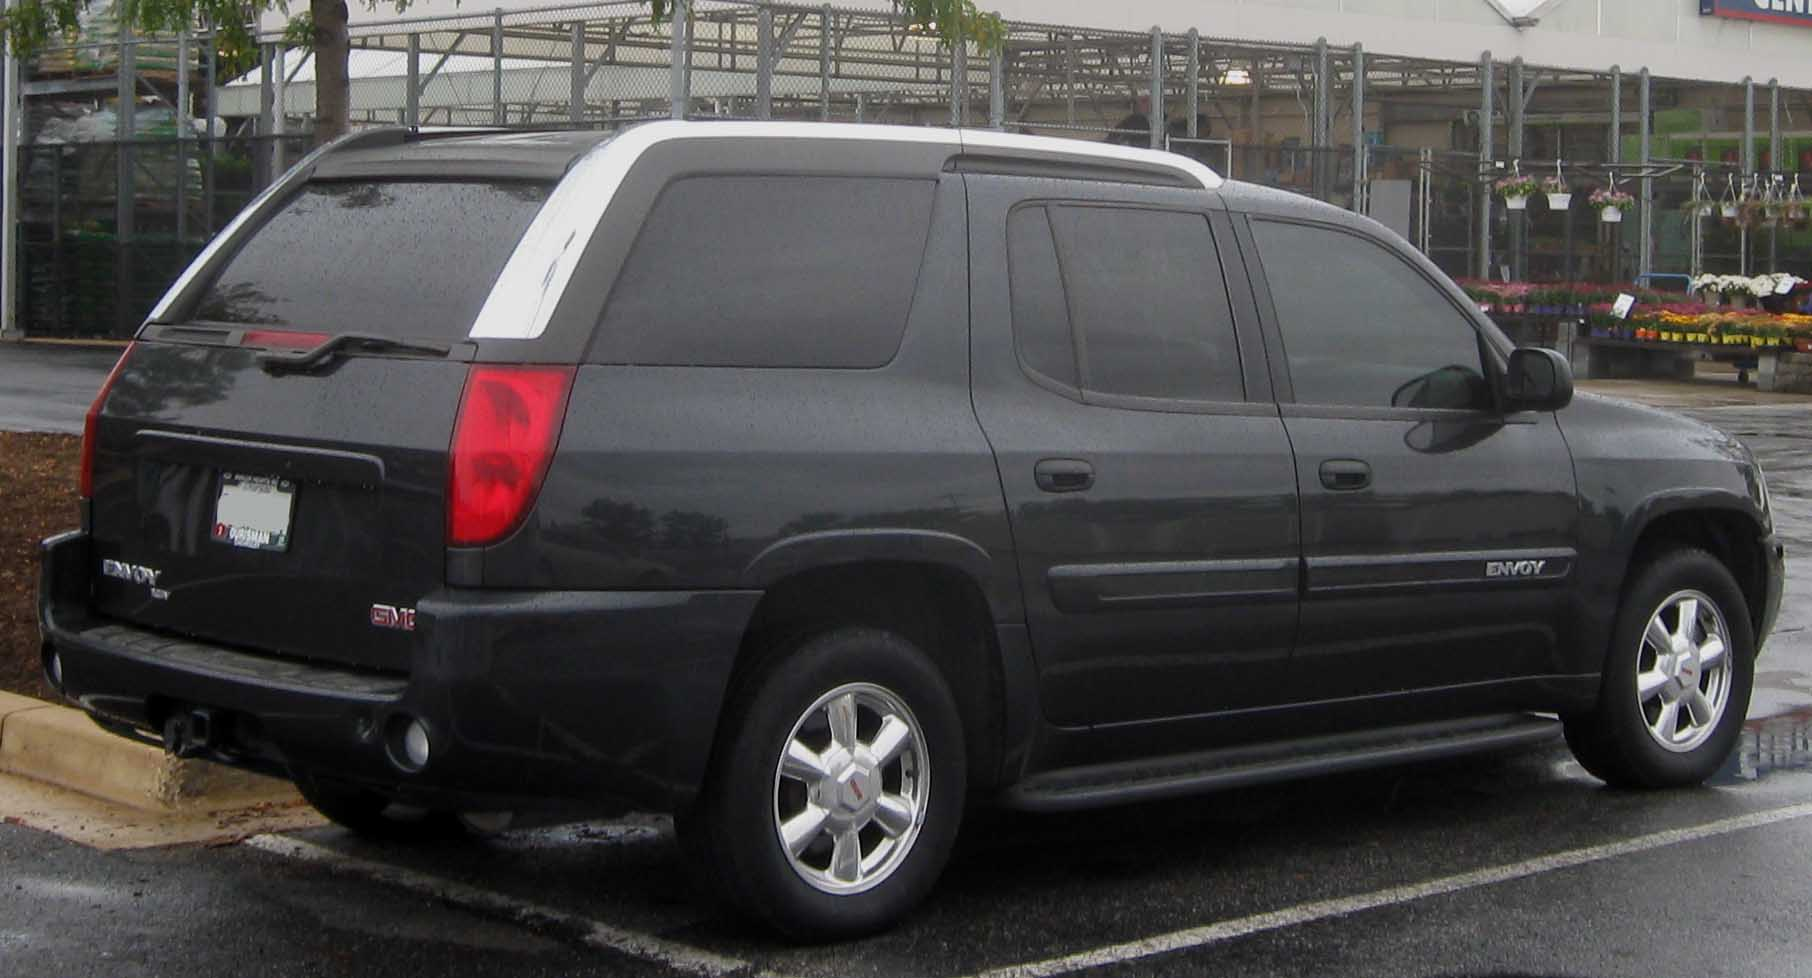 File:GMC Envoy XUV rear.jpg - Wikipedia, the free encyclopedia